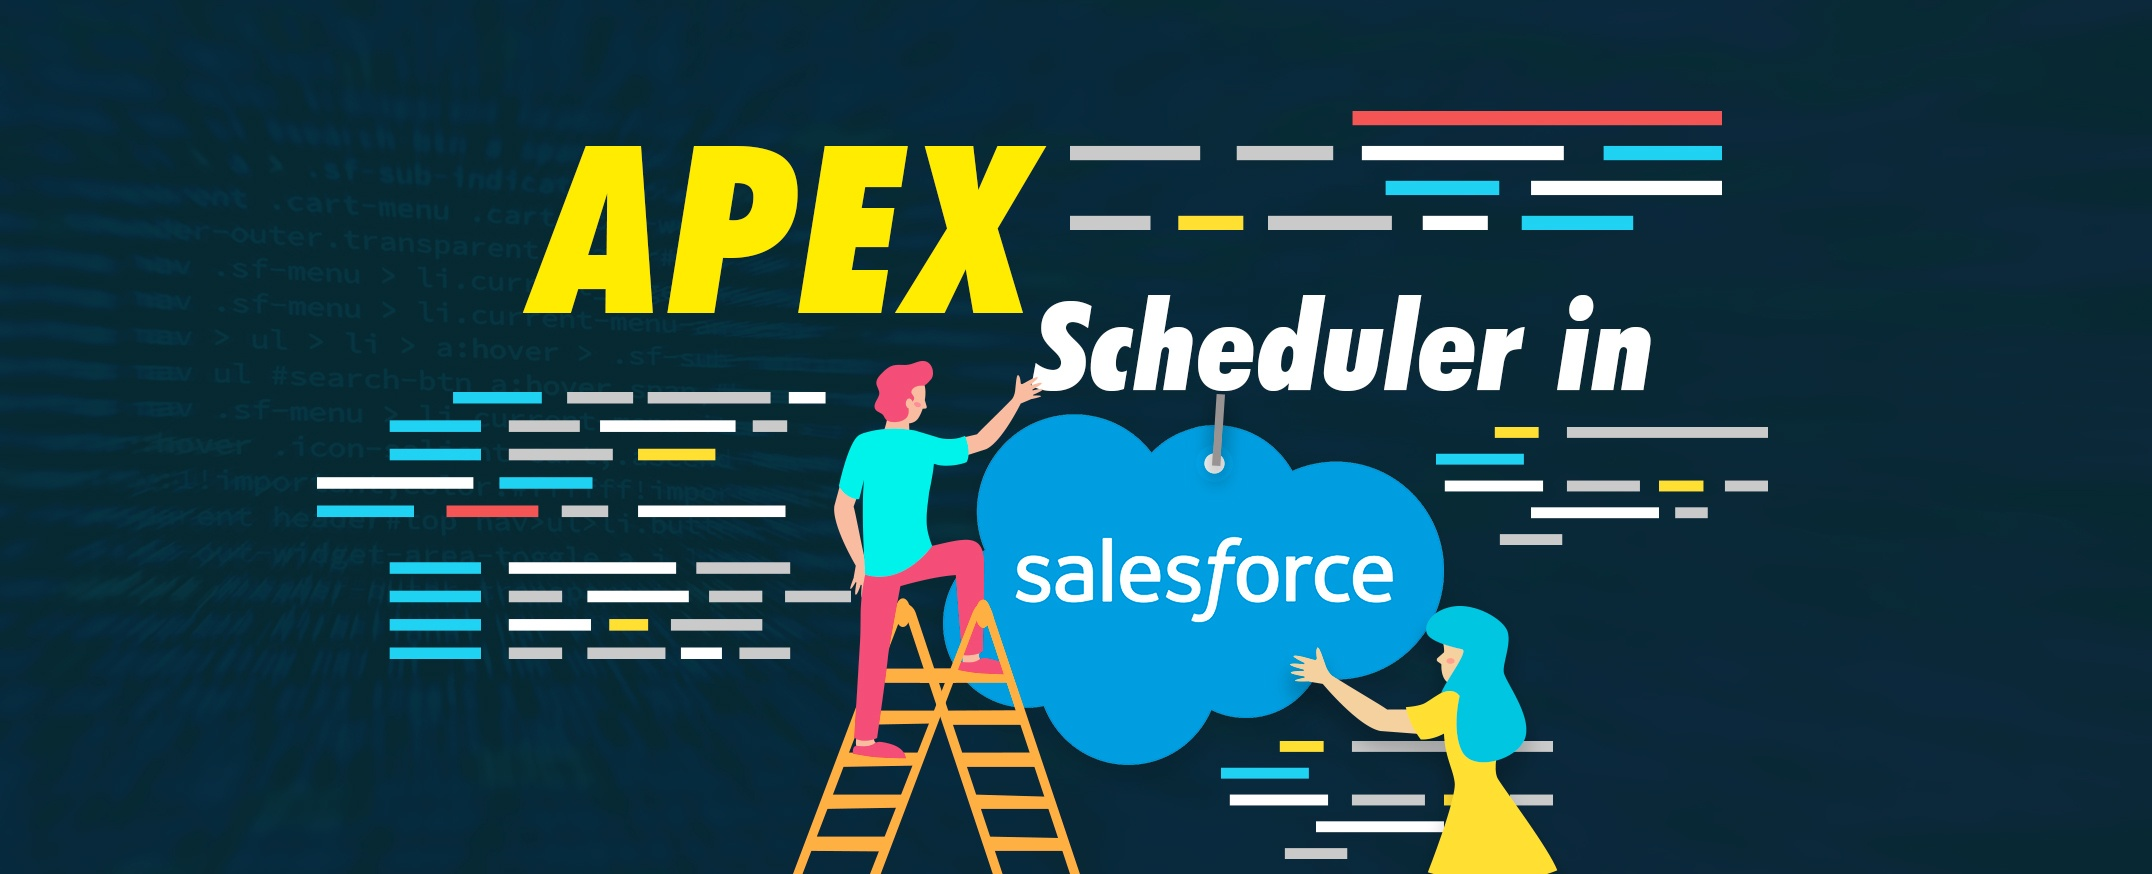 APEX-Scheduler-in-Salesforce